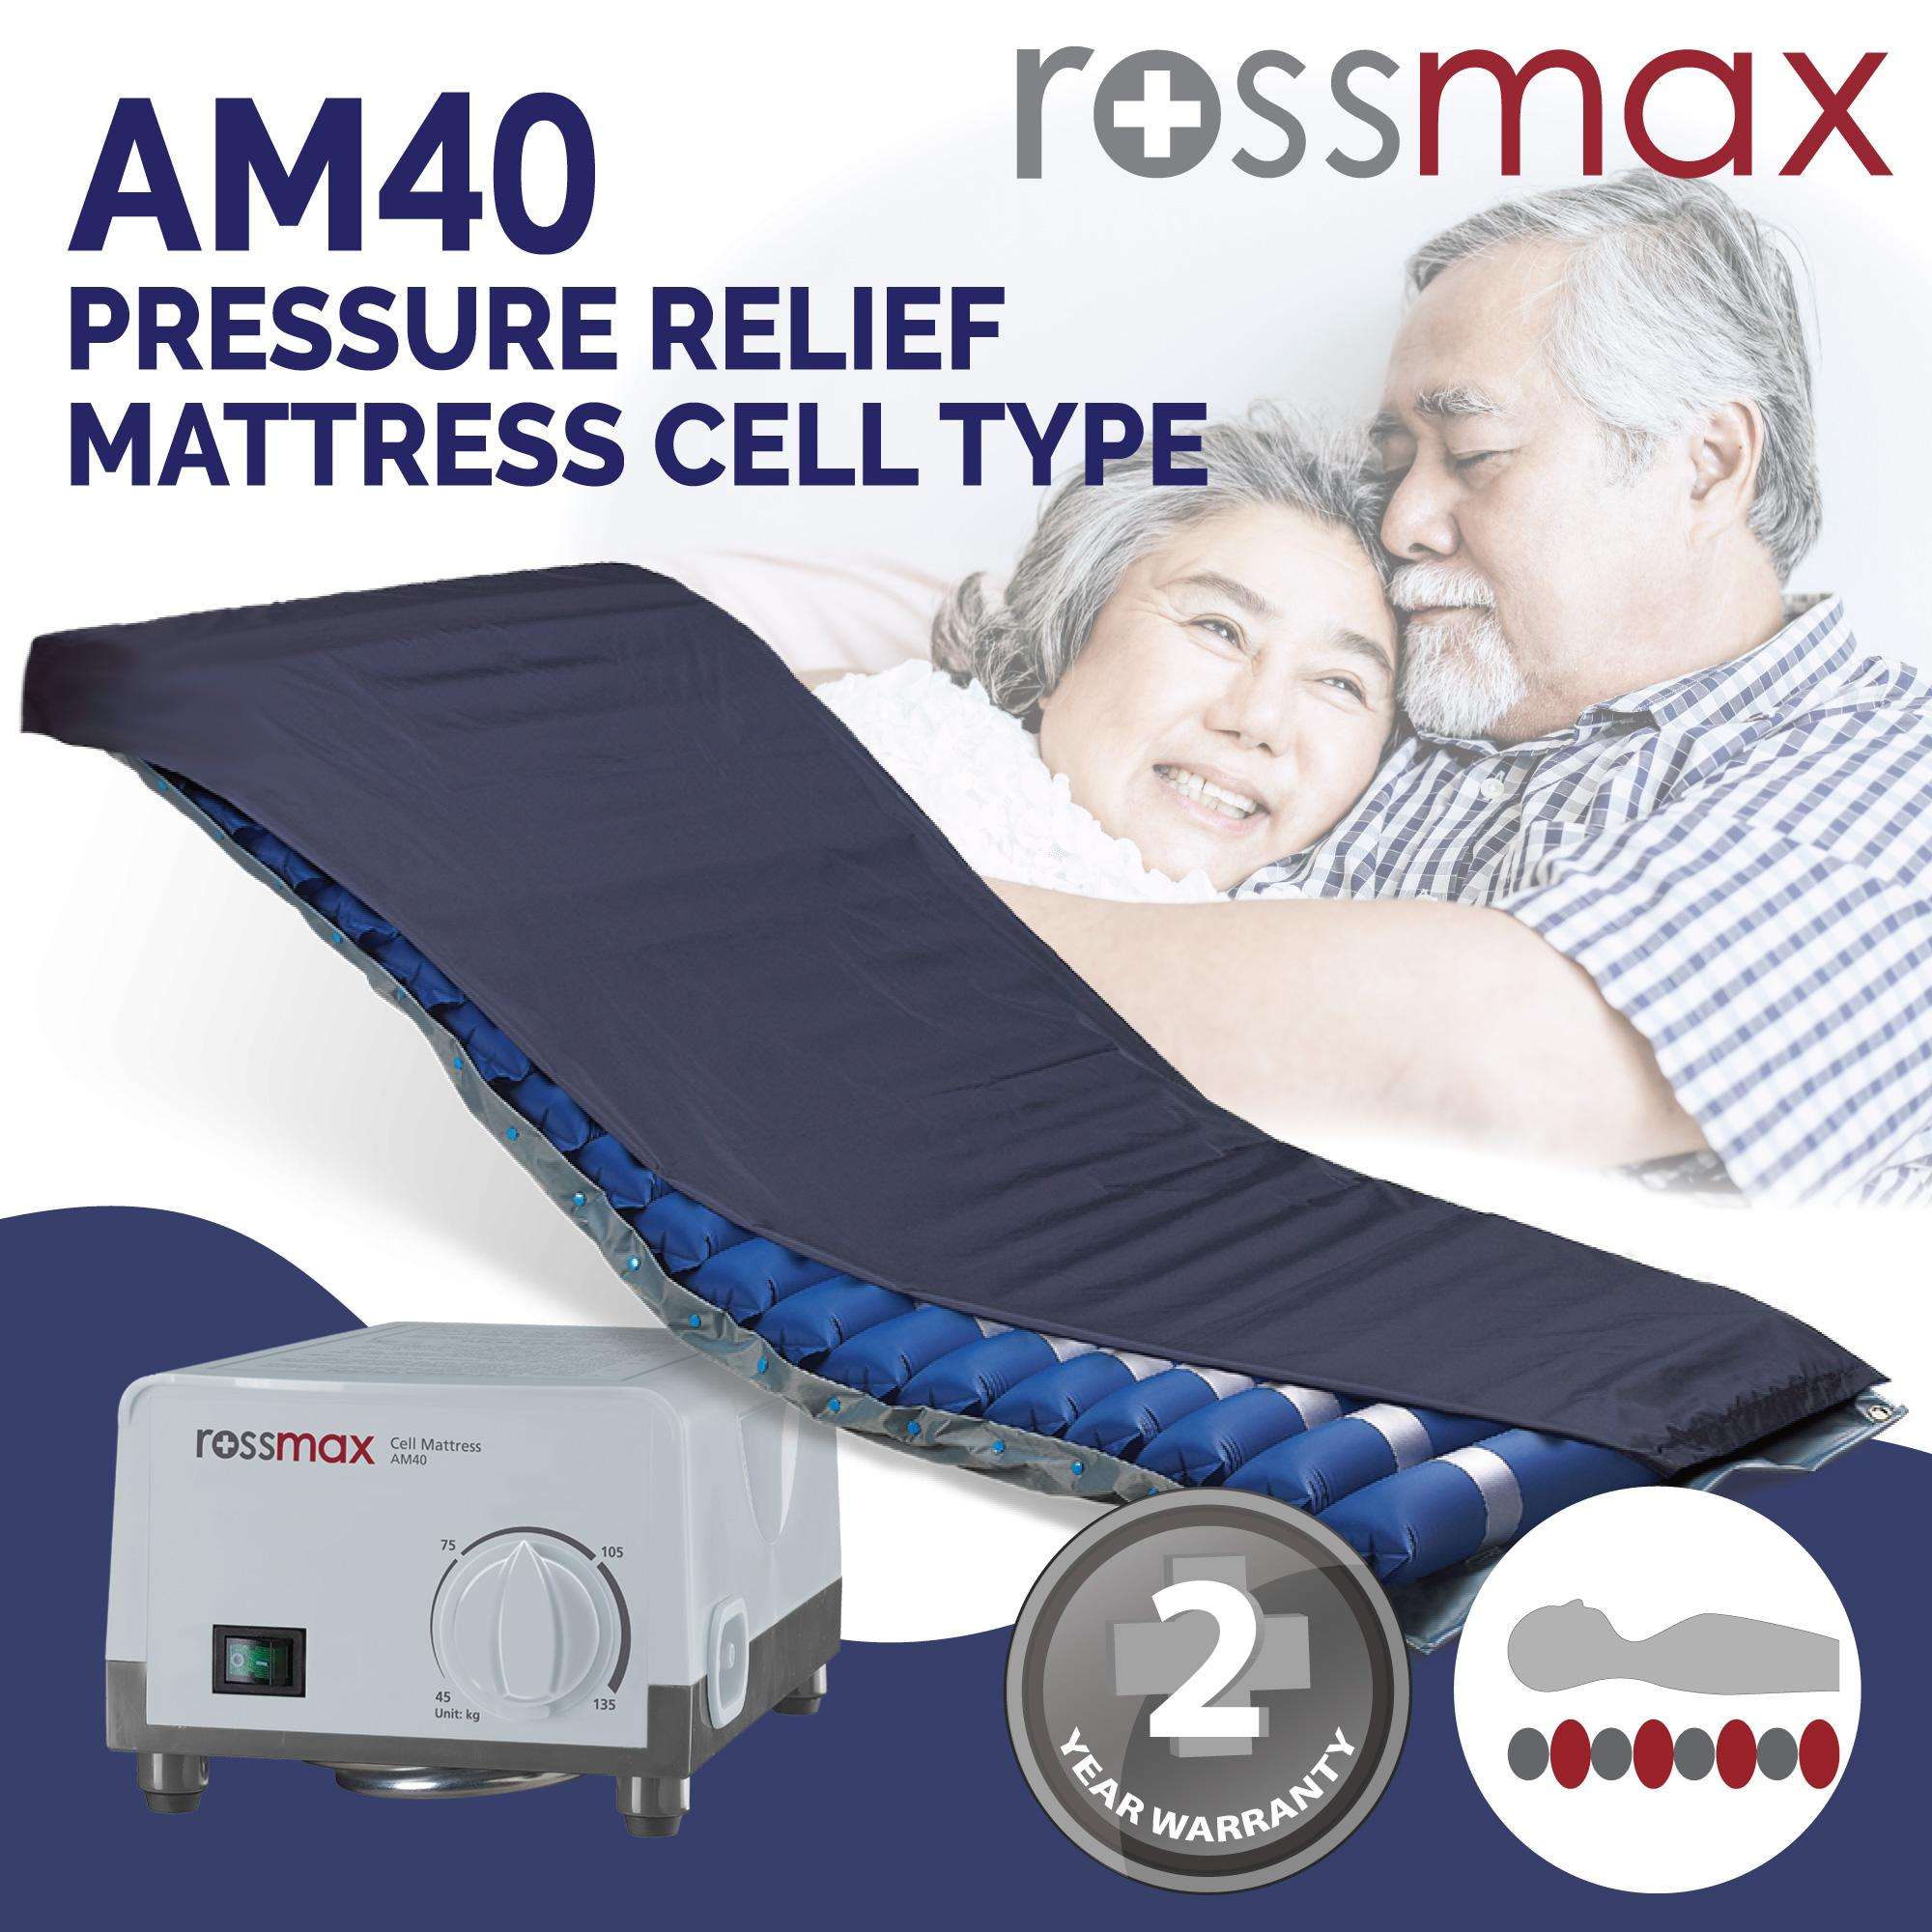 Rossmax Pressure Relief Mattress Am40.